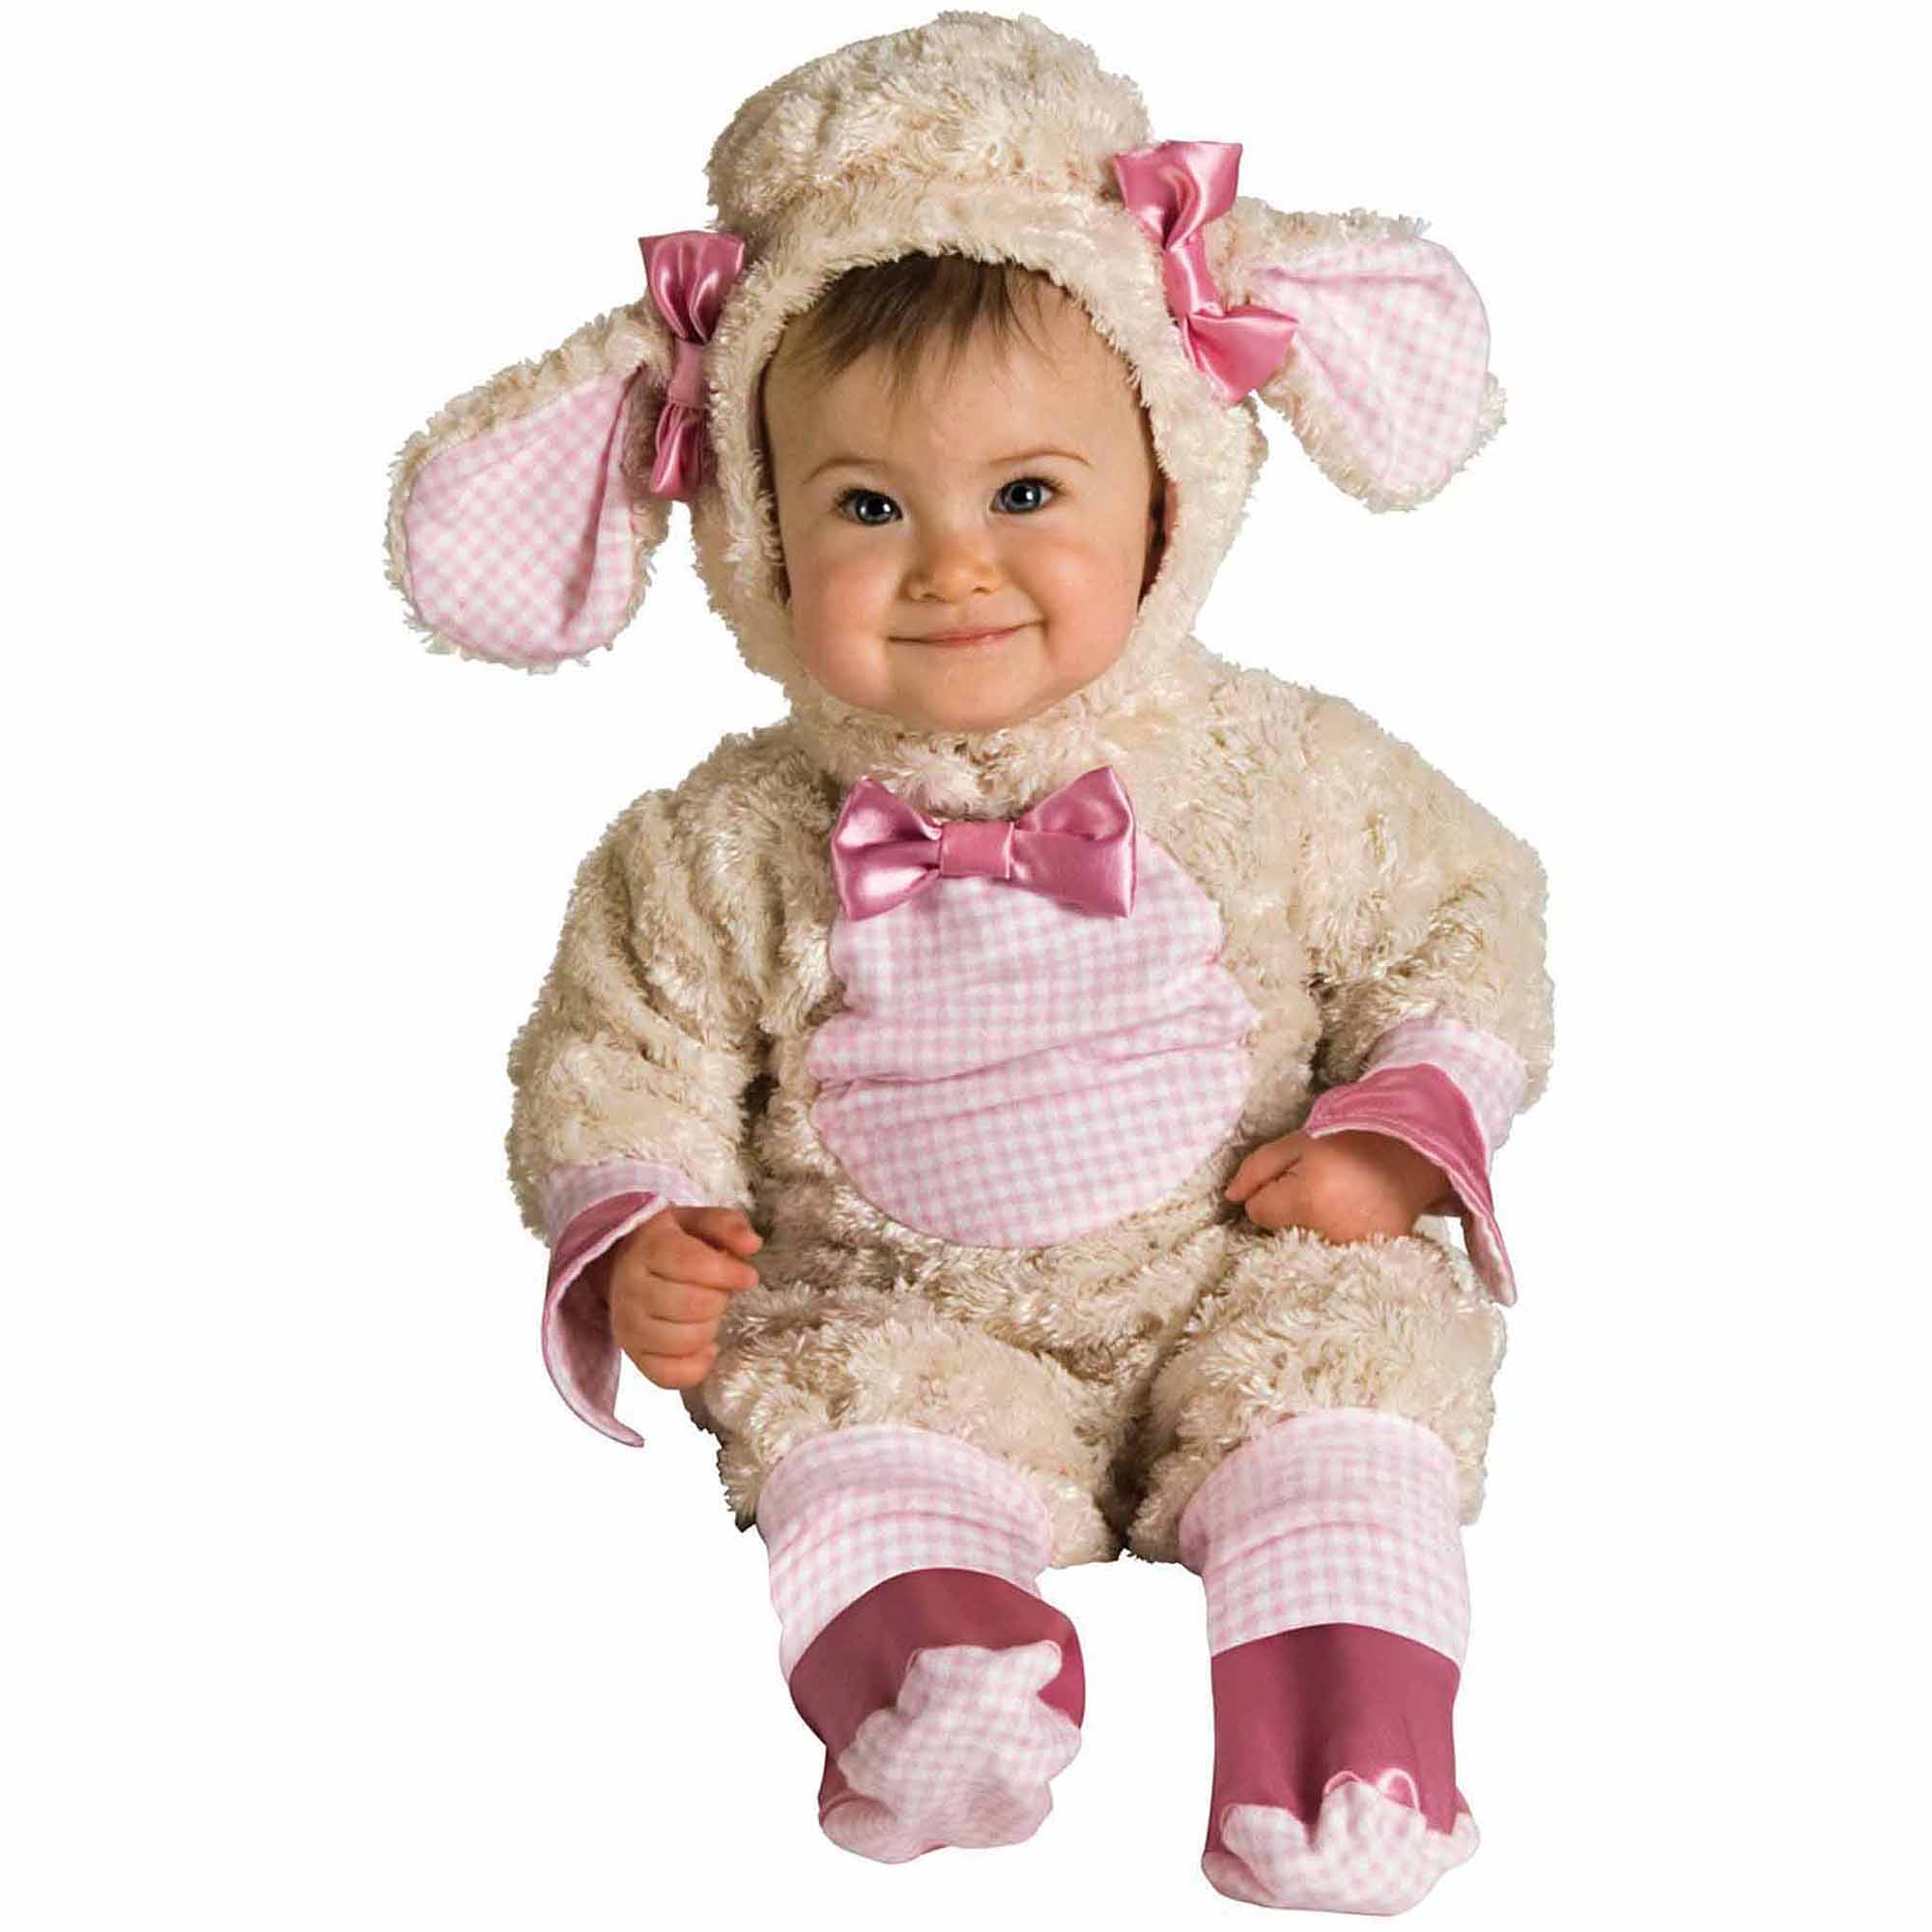 Pink Lamb Infant Halloween Costume Size 6-12 Months  sc 1 st  Walmart & Infant Halloween Costumes 3-6 Months